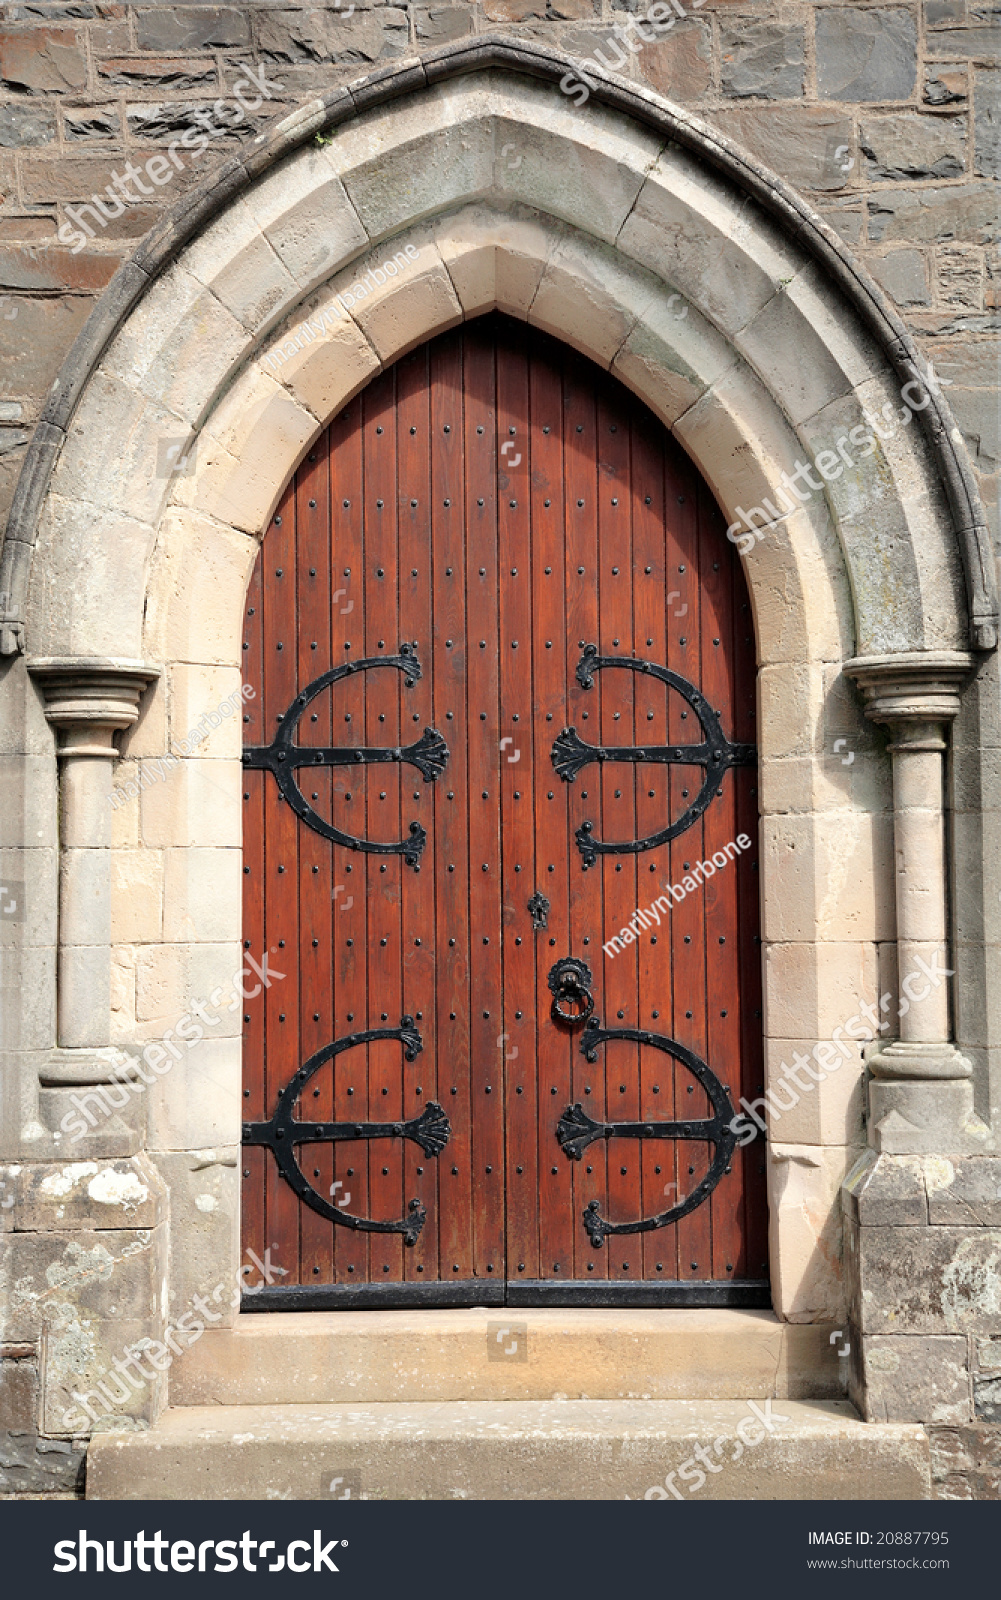 Old Wooden Oak Arched Gothic Church Doorway With Black